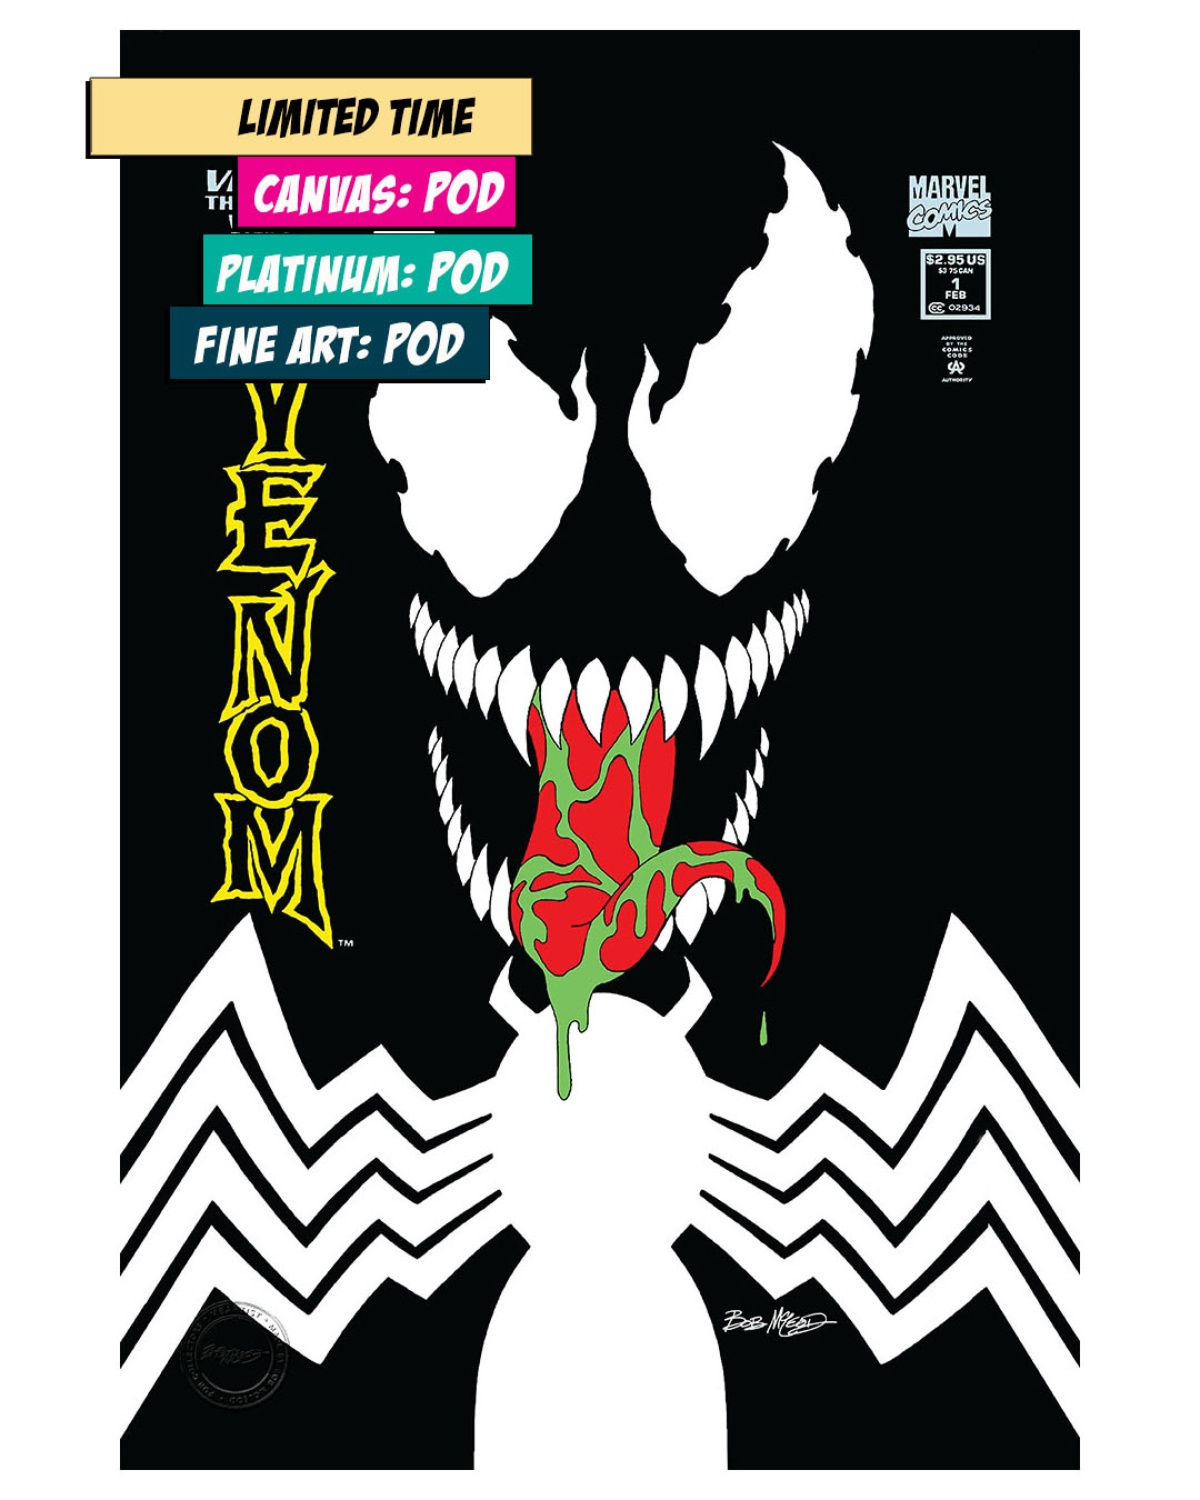 VENOM #1: THE ENEMY WITHIN